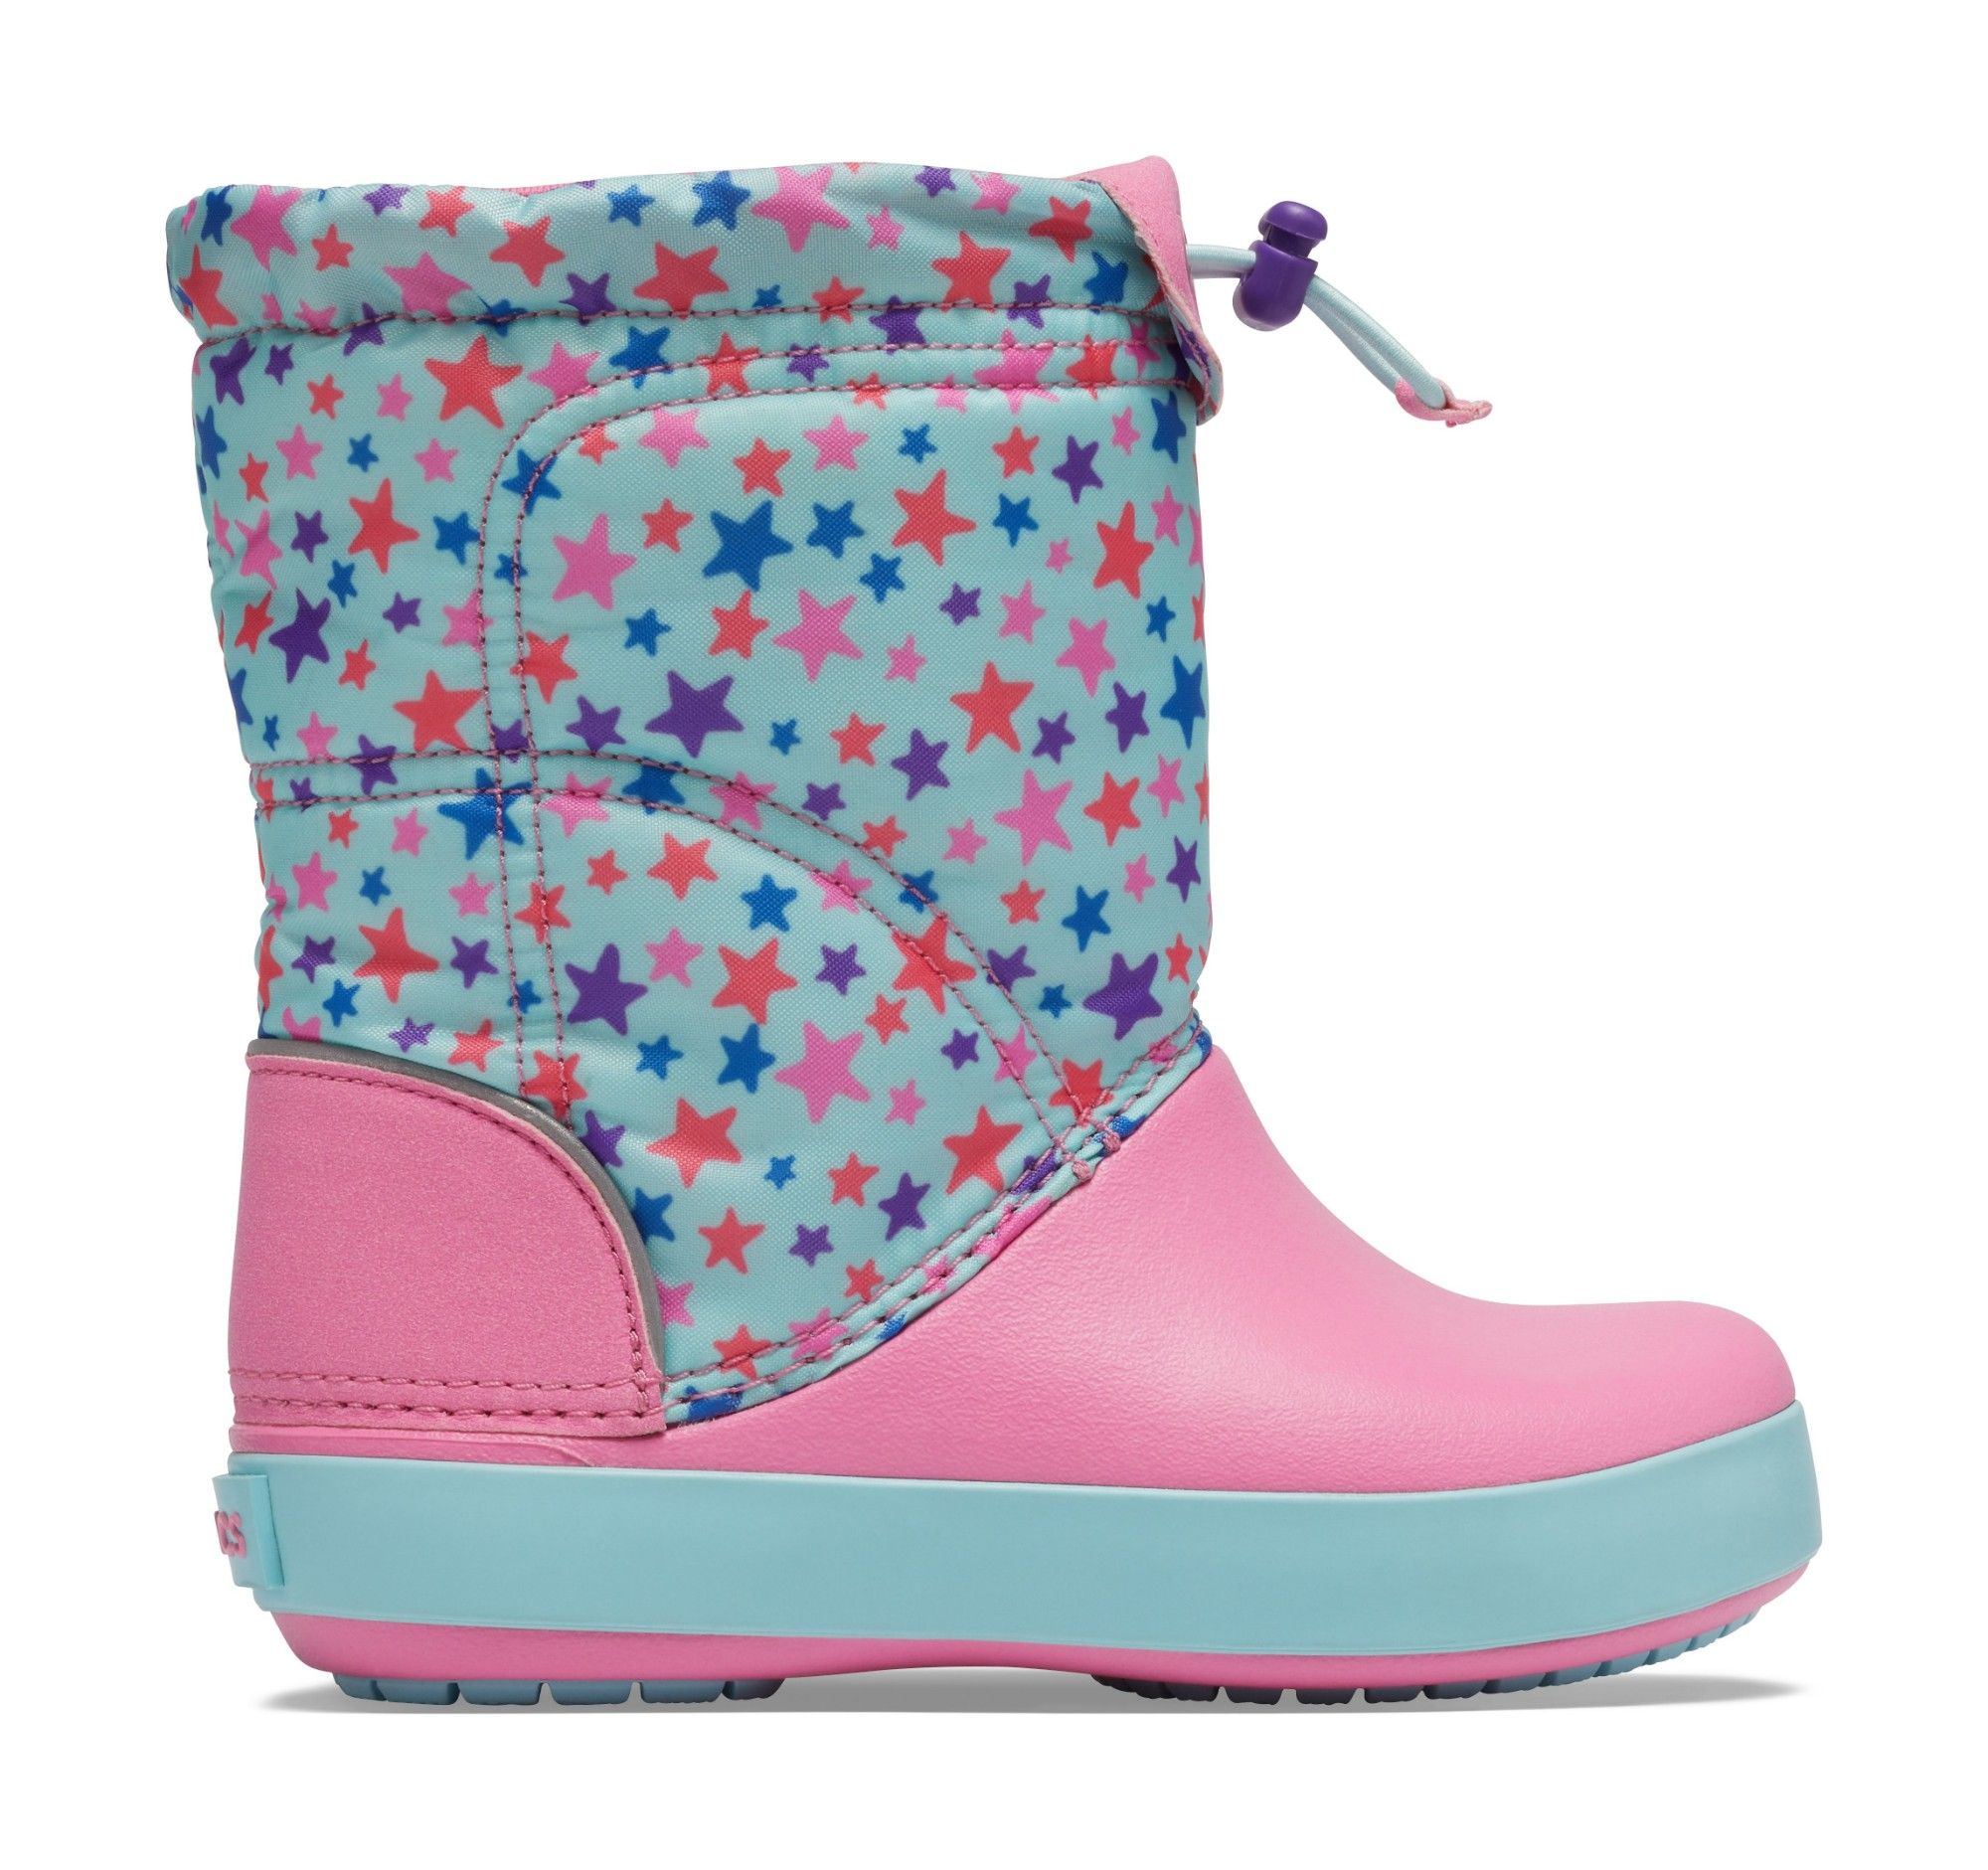 Crocs™ Crocband LodgePoint Graphic Winter Boot K Ice Blue/Pink Lemonade 28